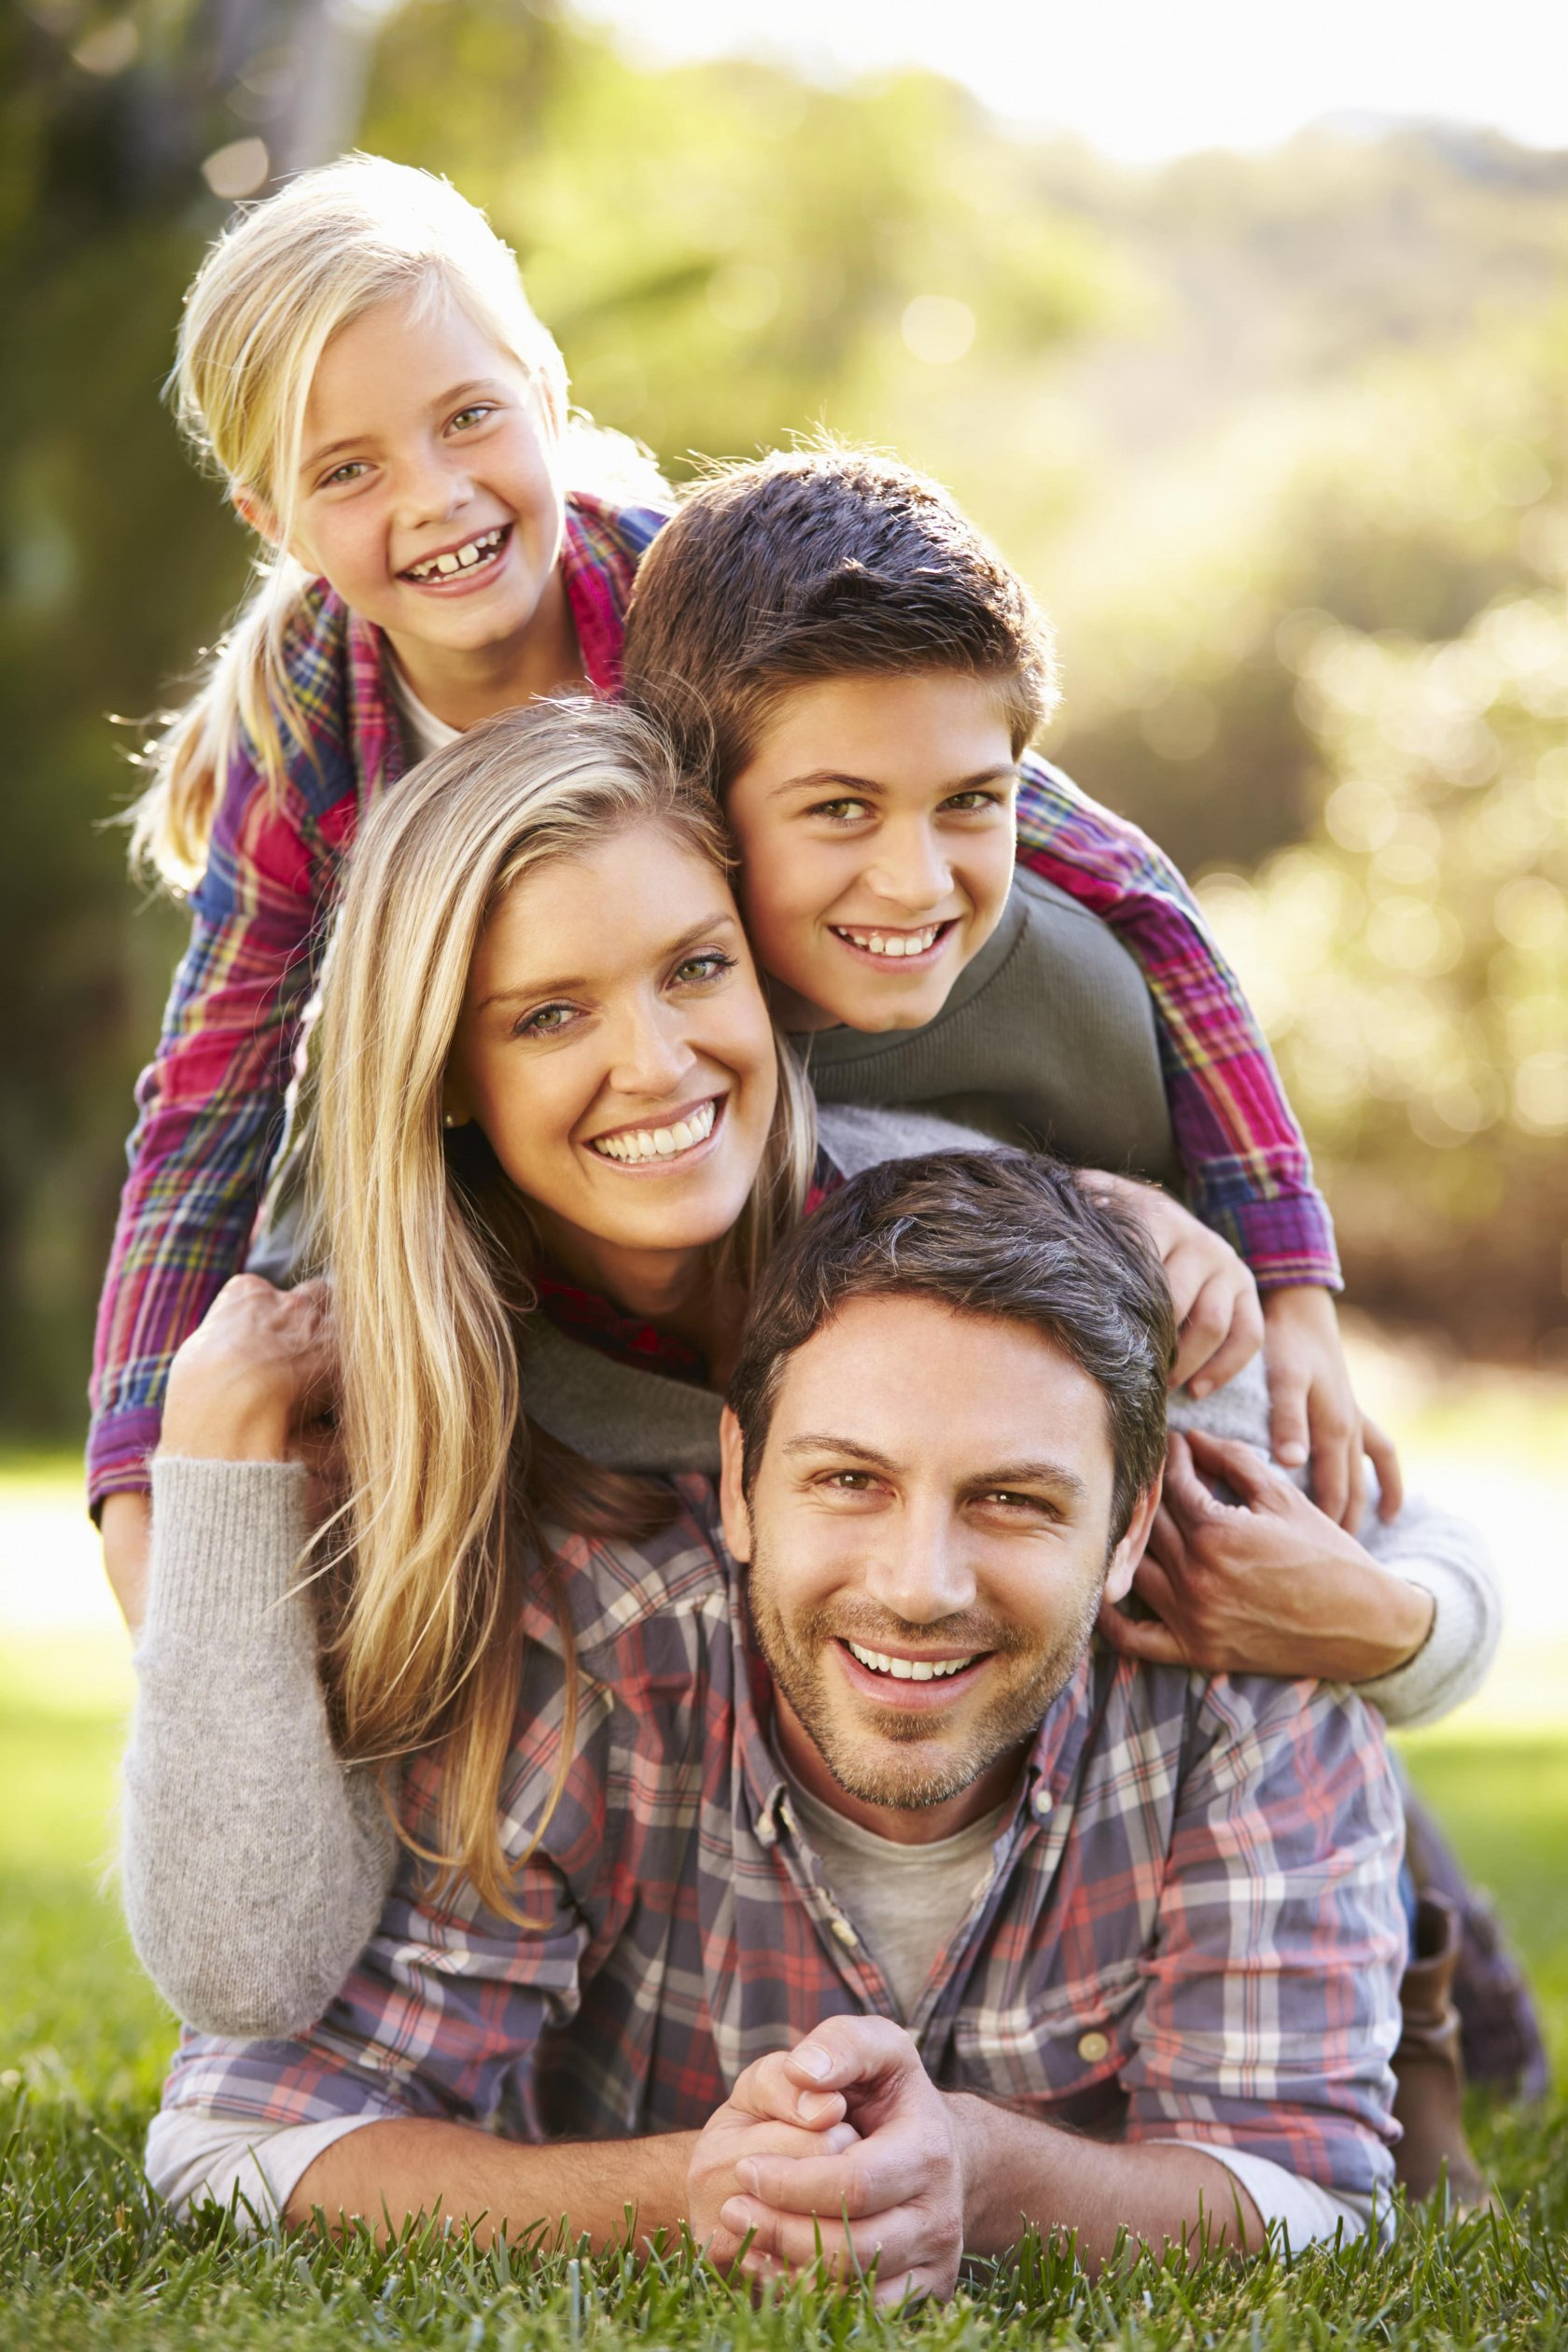 Create Heartwarming Family Portraits Worth Printing Out Image1